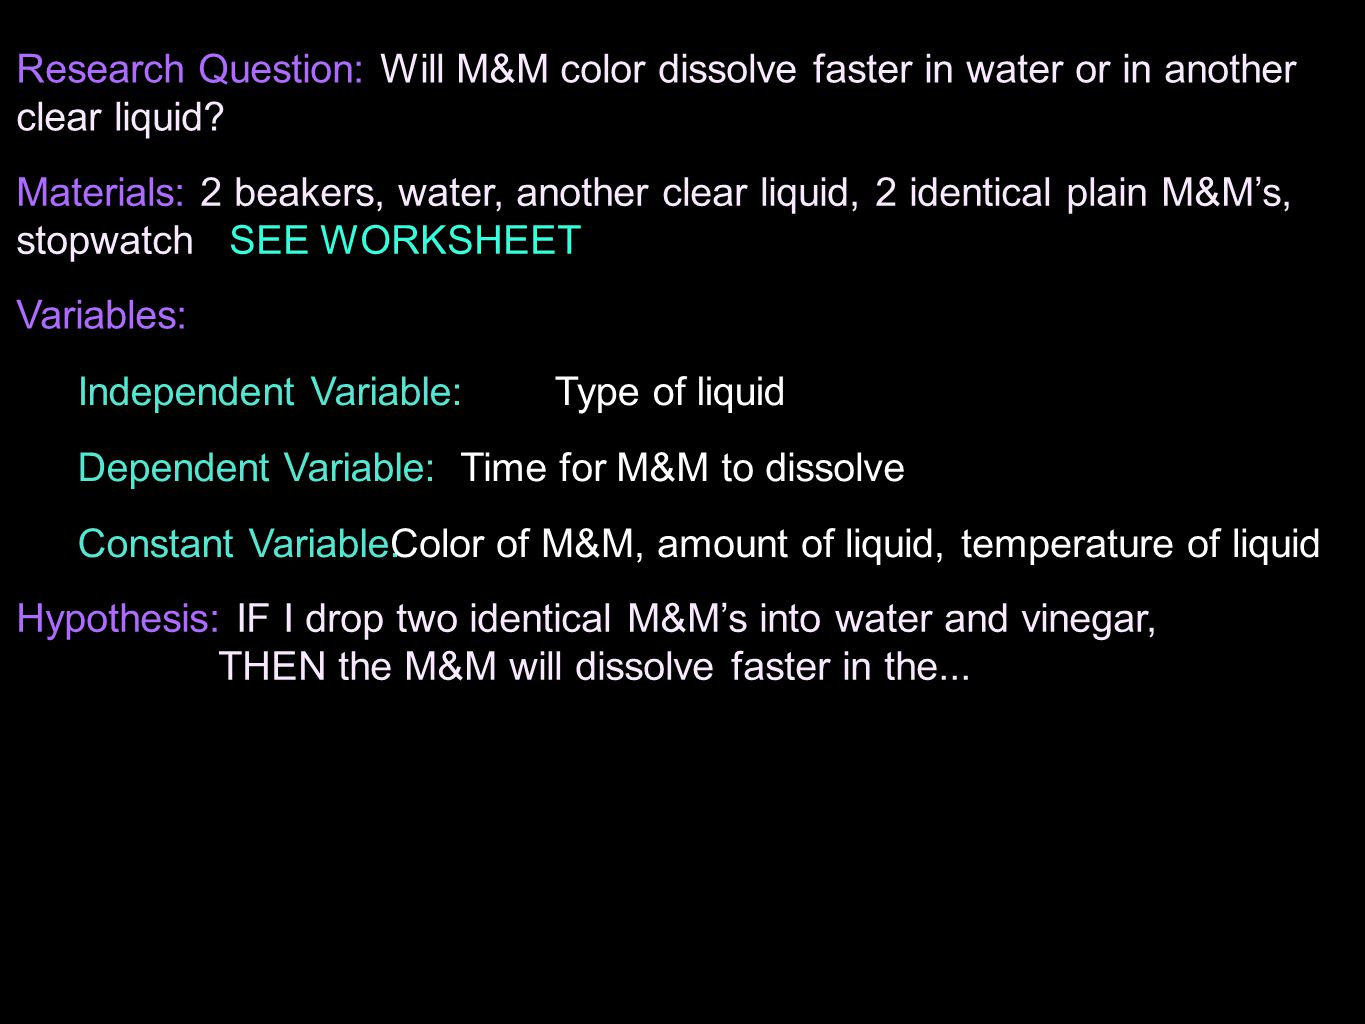 Independent Variable: Type of liquid